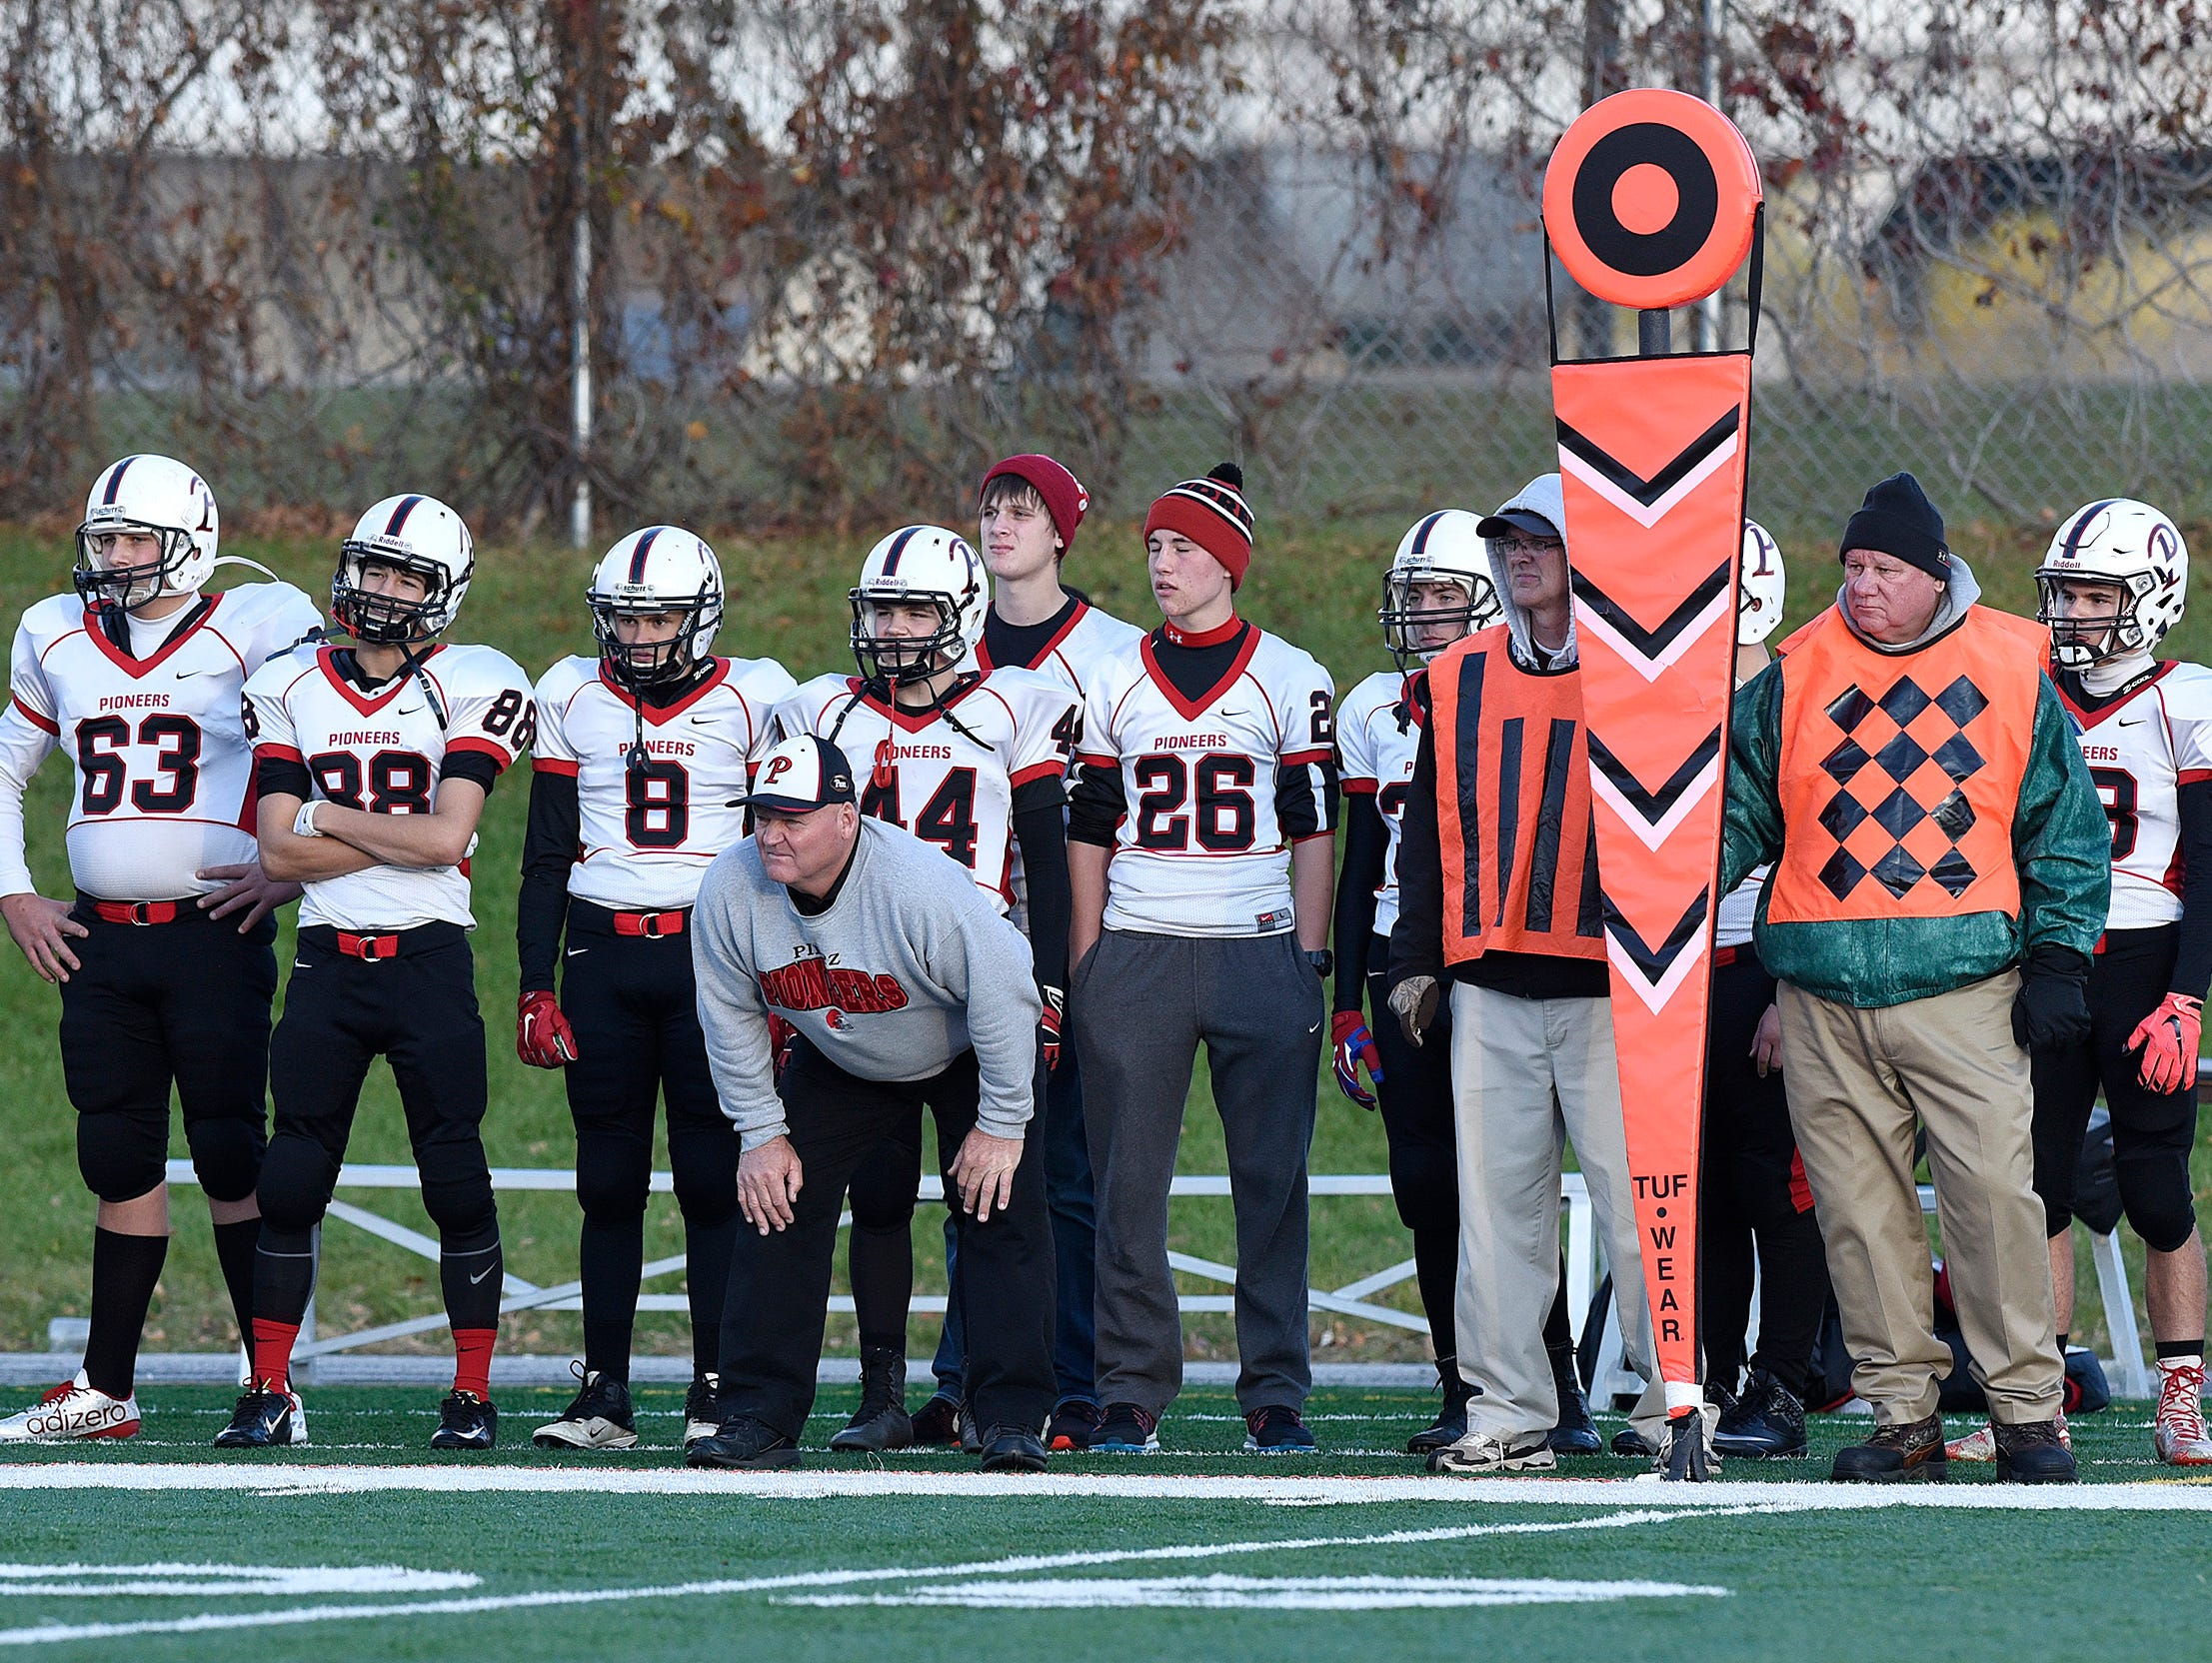 Pierz coaches and players watch the action during a game at Husky Stadium in St. Cloud. The Pioneers are playing in the Class 3A state semifinals for the second straight season.